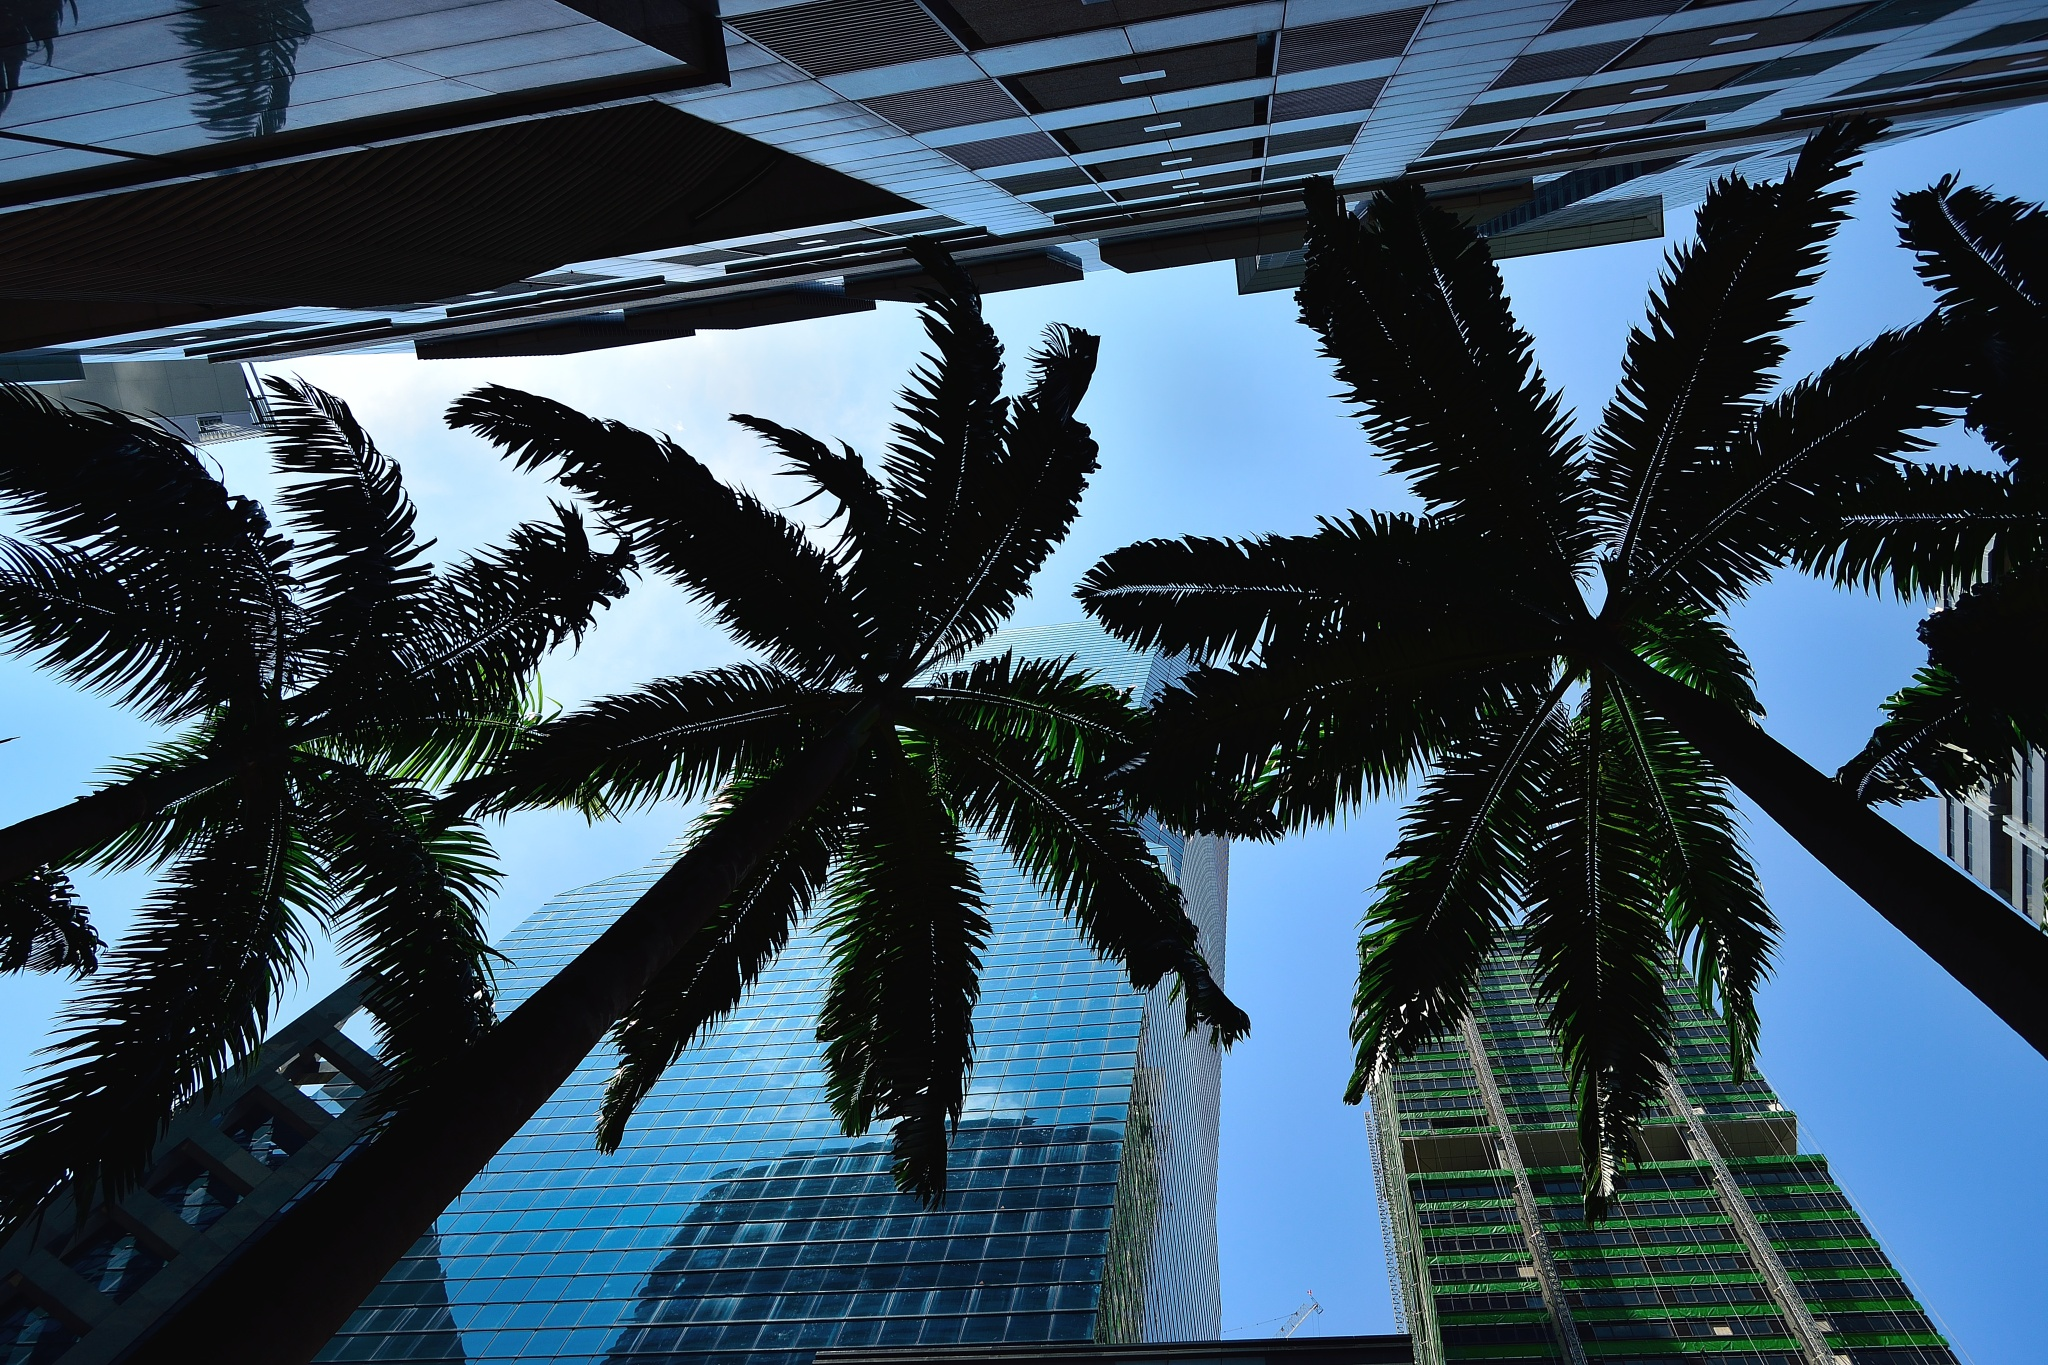 Palms in the City by JustinAdamLee